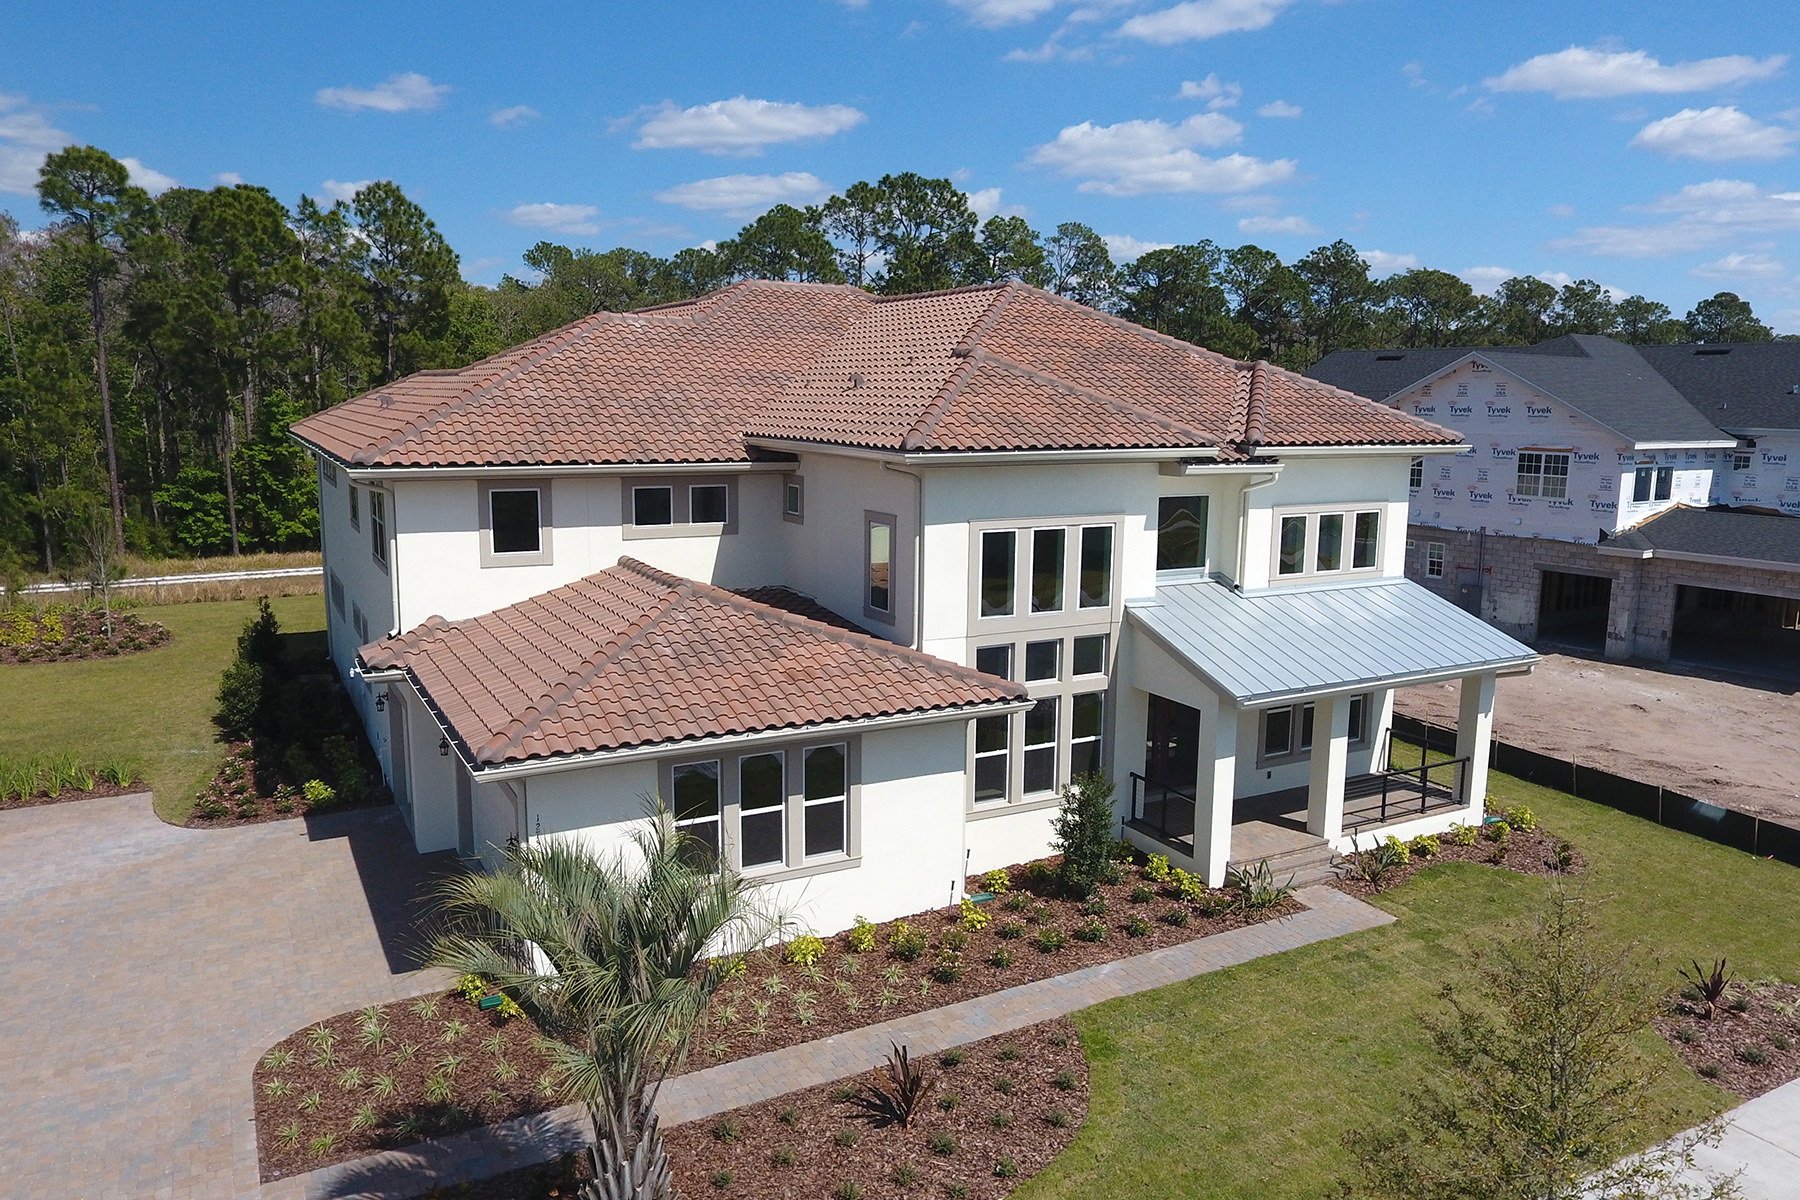 Single Family Home for Sale at ORLANDO-LAKE NONA 12755 Upper Harden Ave Orlando, Florida, 32827 United States